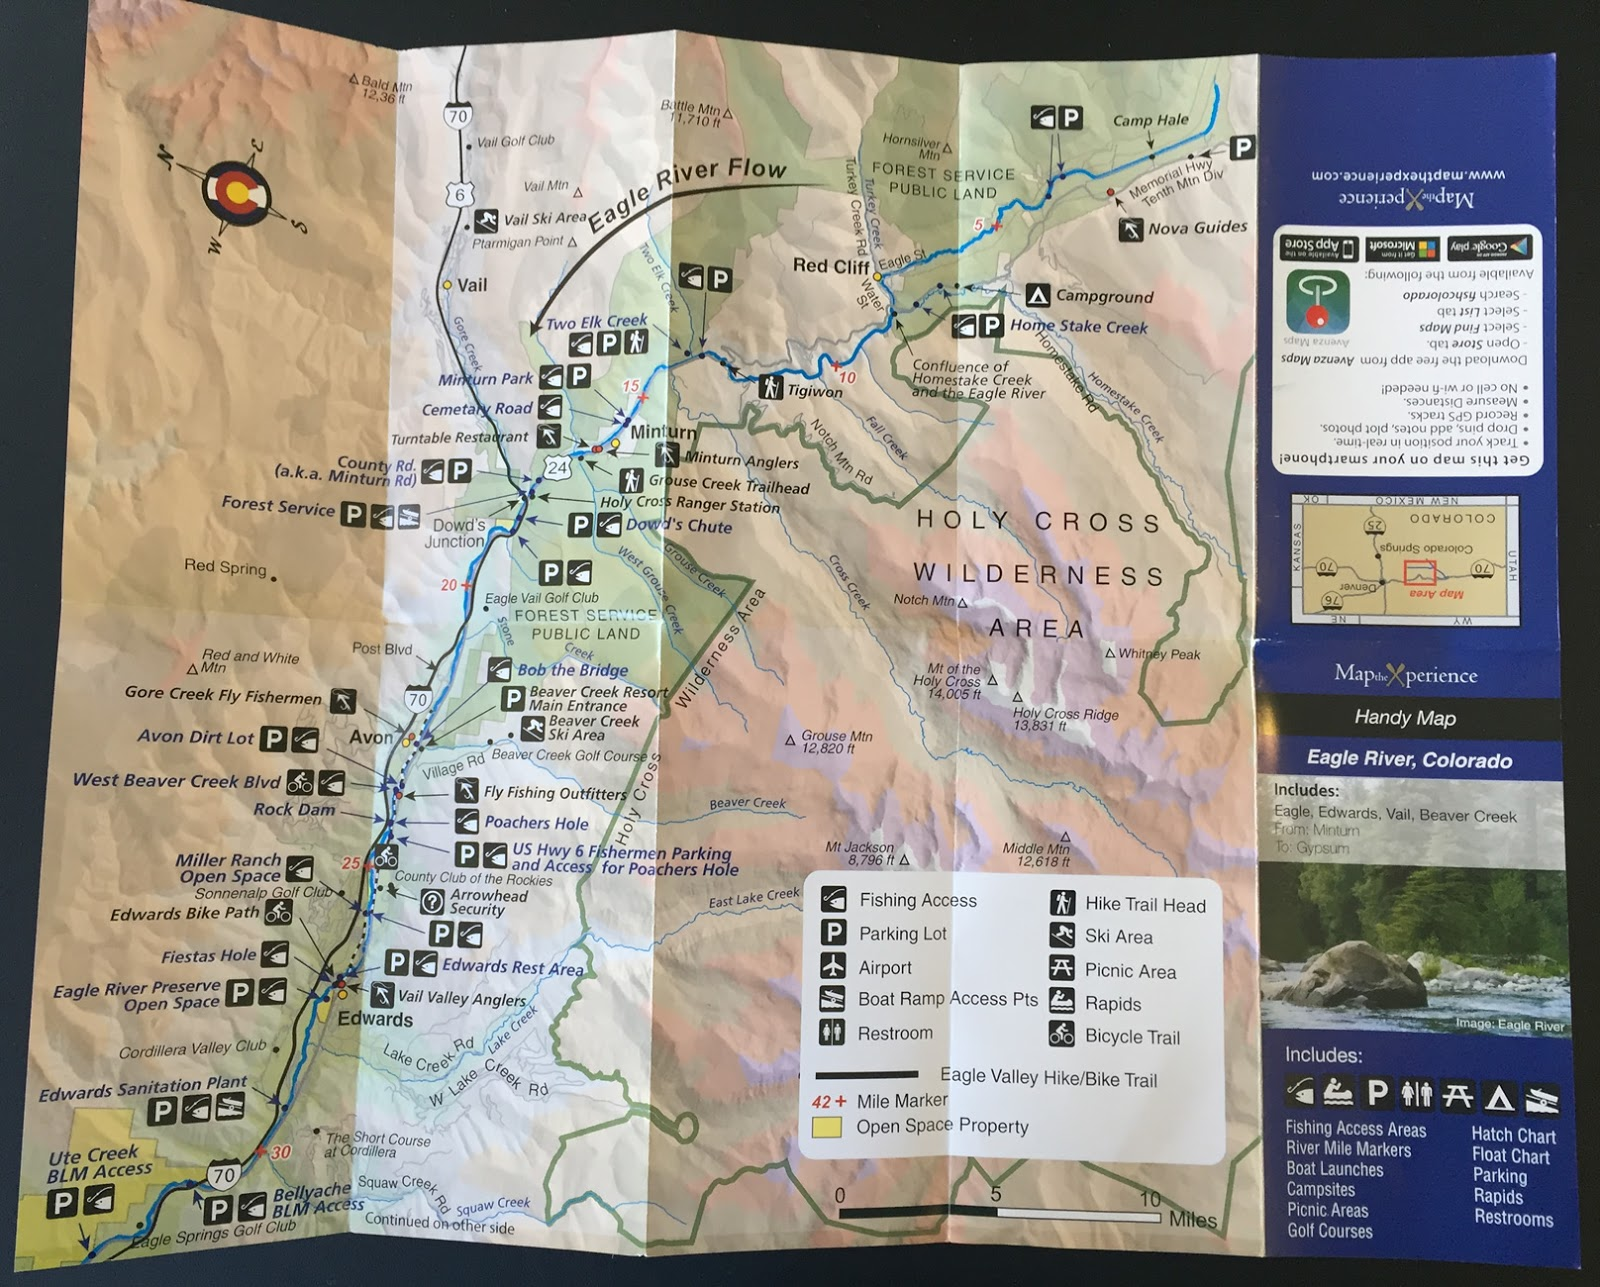 our eagle river map is available as a 15x11 water resistant paper map for 7 99 and as digital gps mobile maps that can be downloaded for 2 99 to 4 99